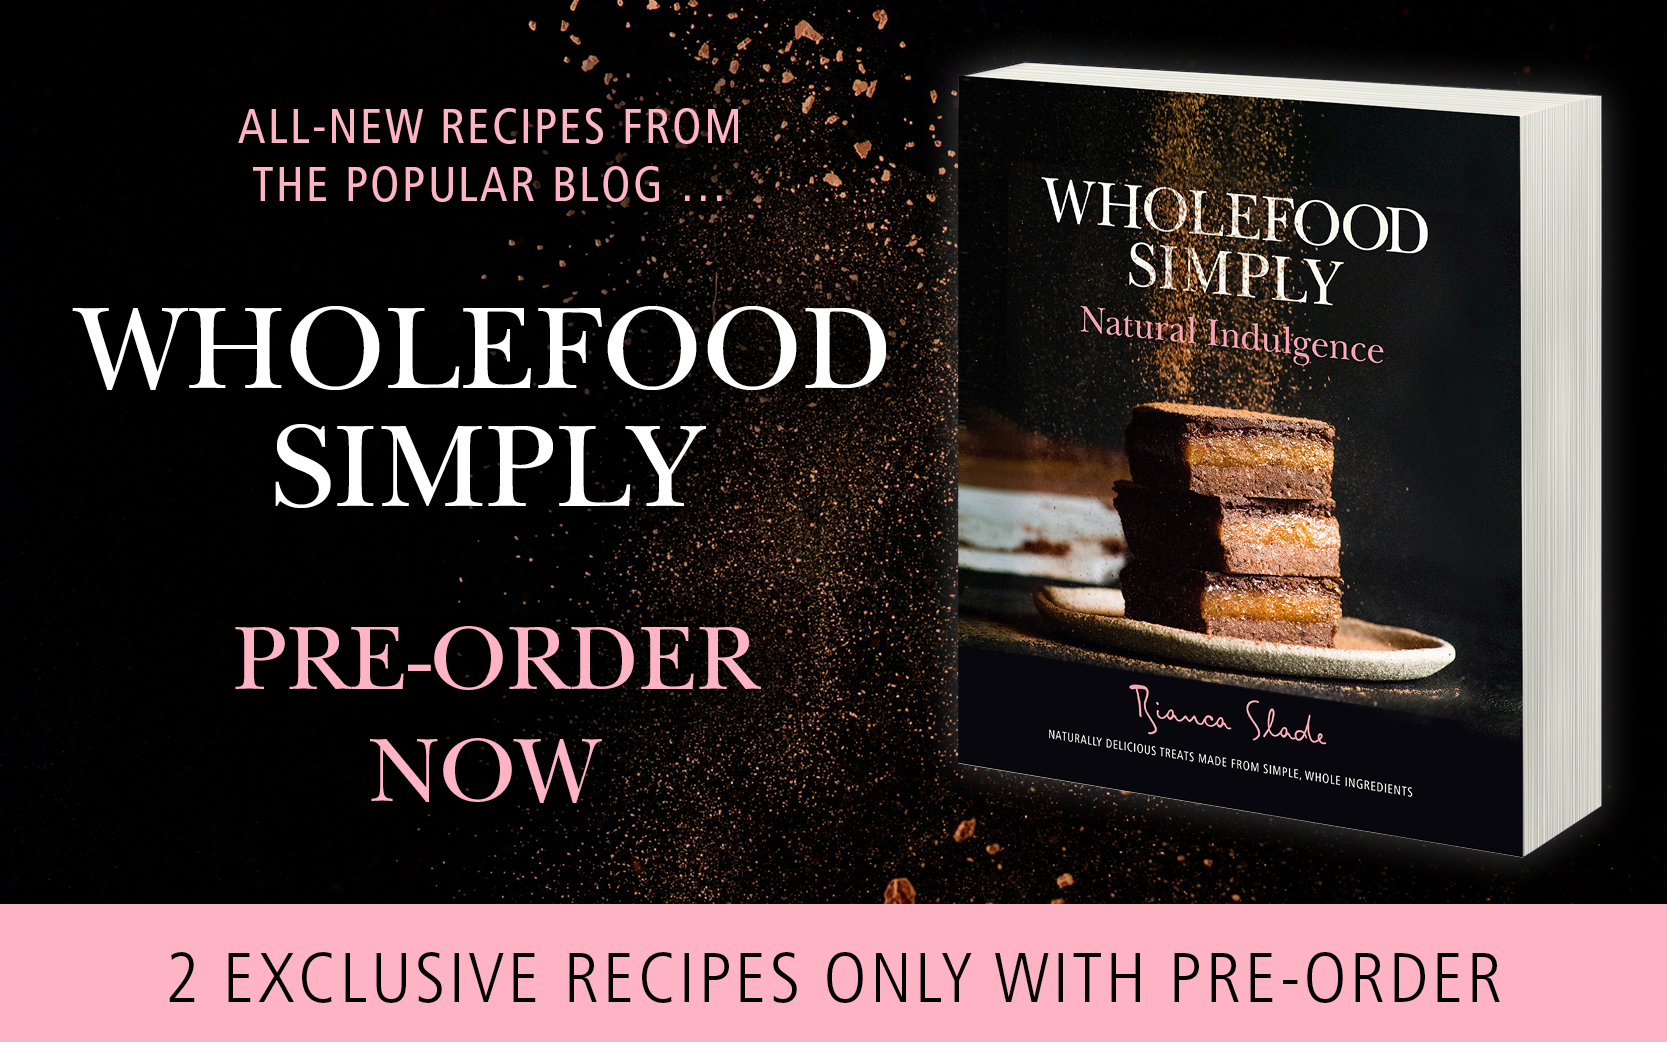 Wholefood Simply pre-order